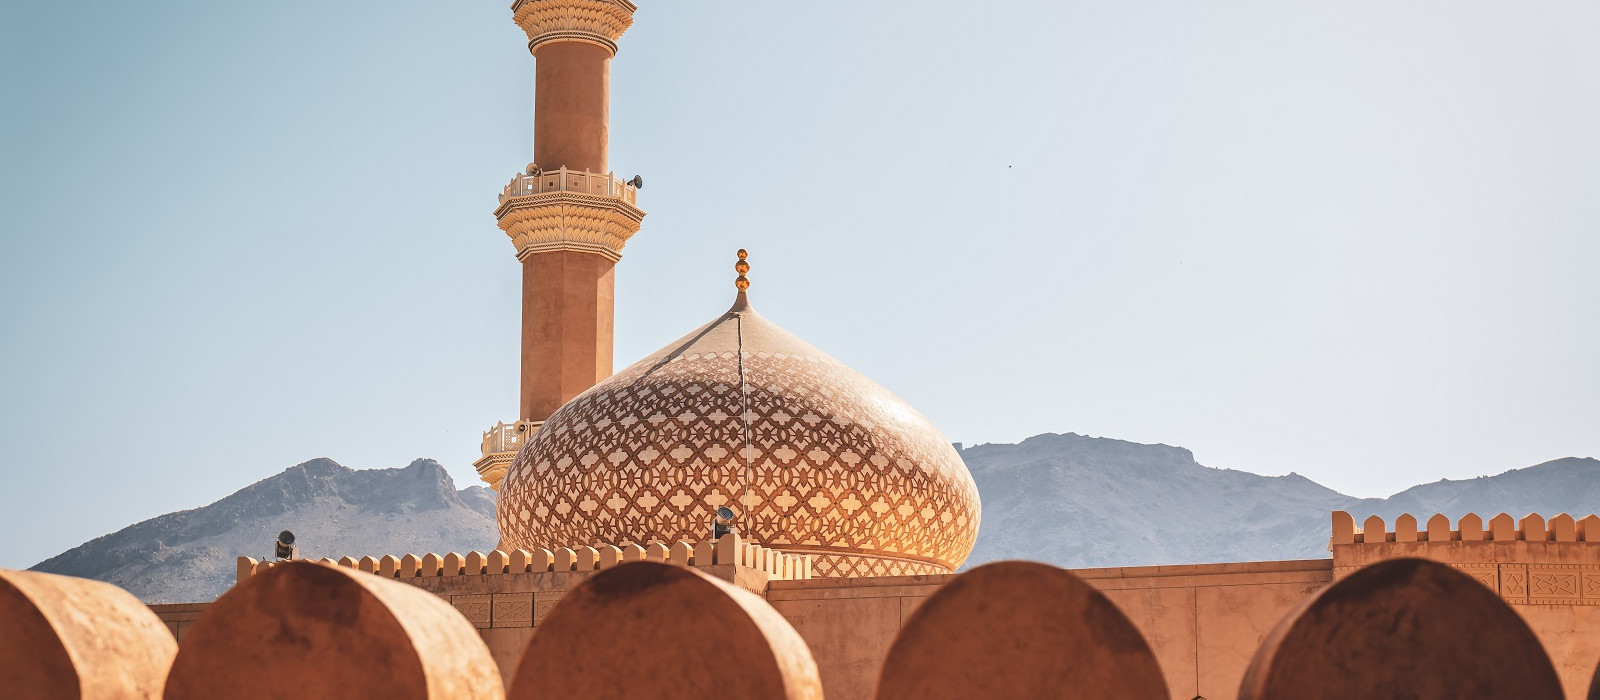 Oman: Mountains, Fortresses and Desert Tour Trip 1